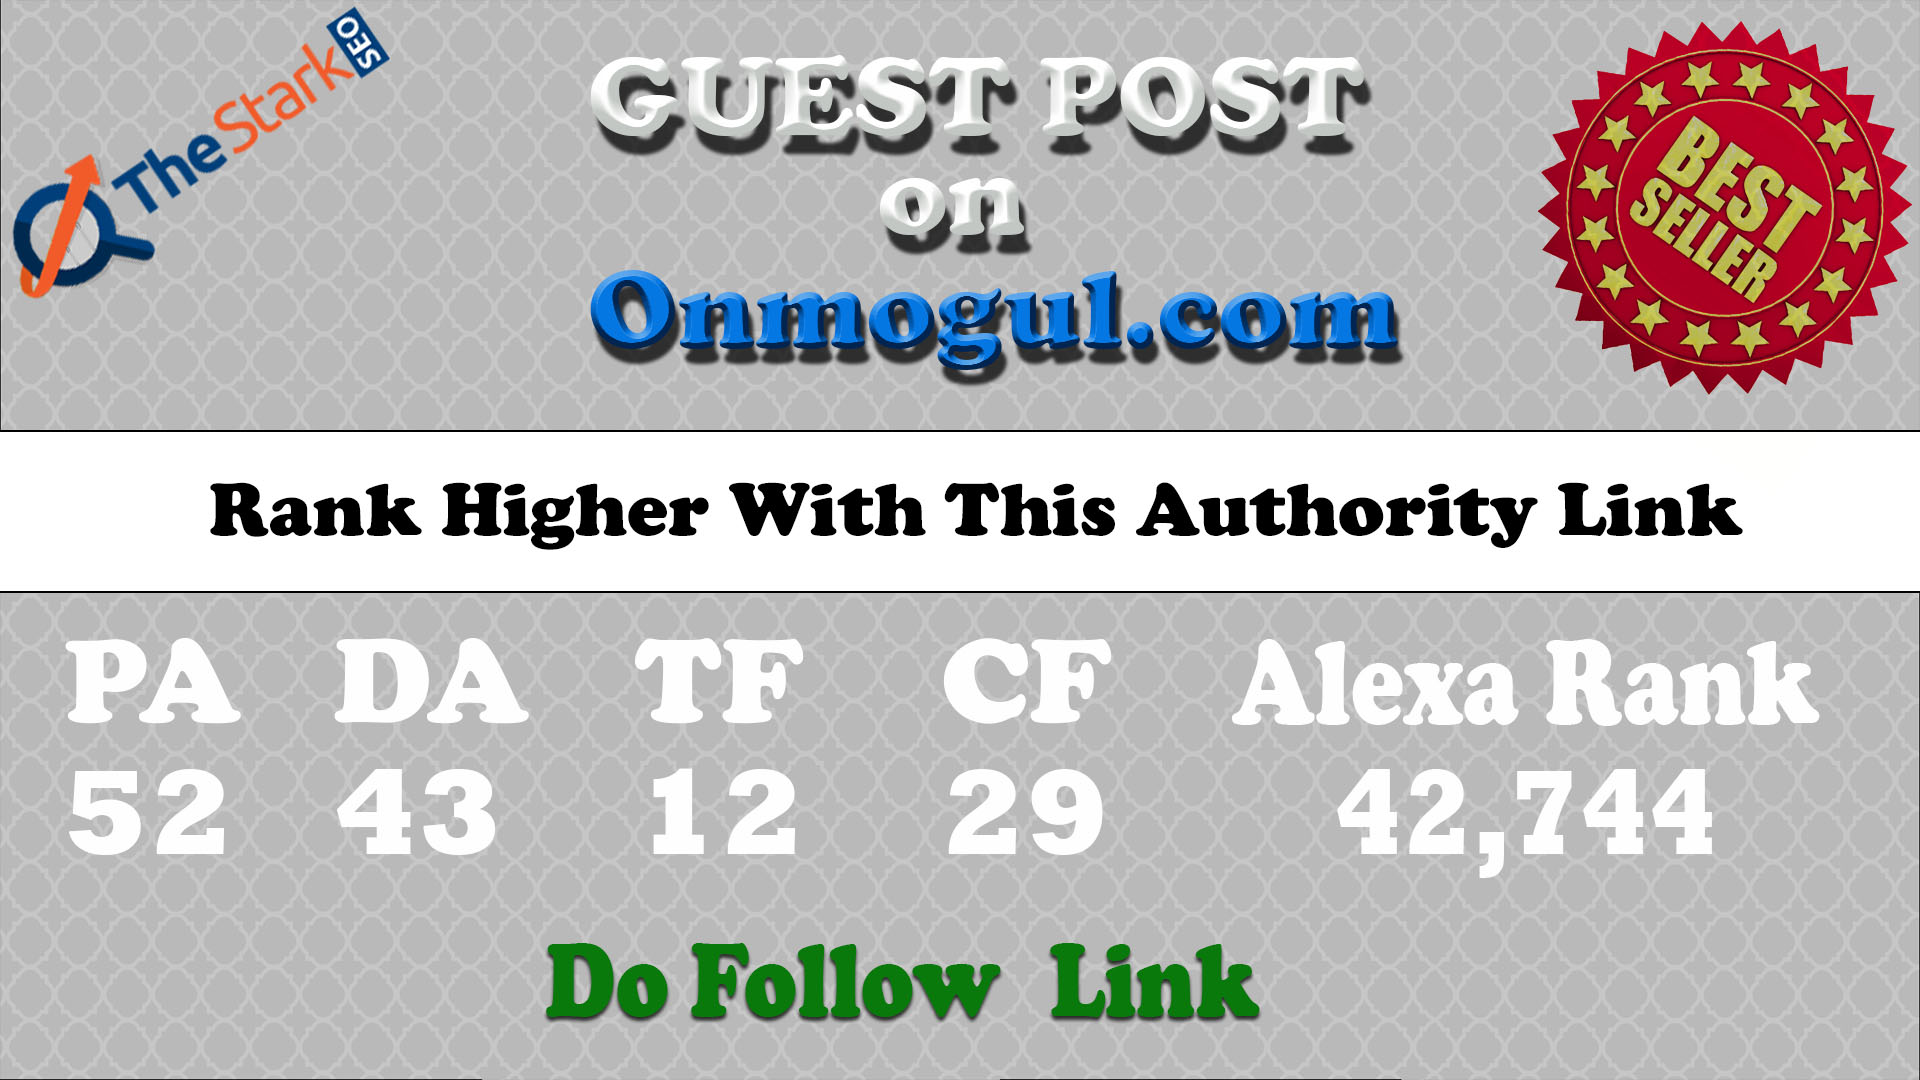 Write and Publish a Guest Post at Onmogul.com DA 43 Site Do-Follow Link